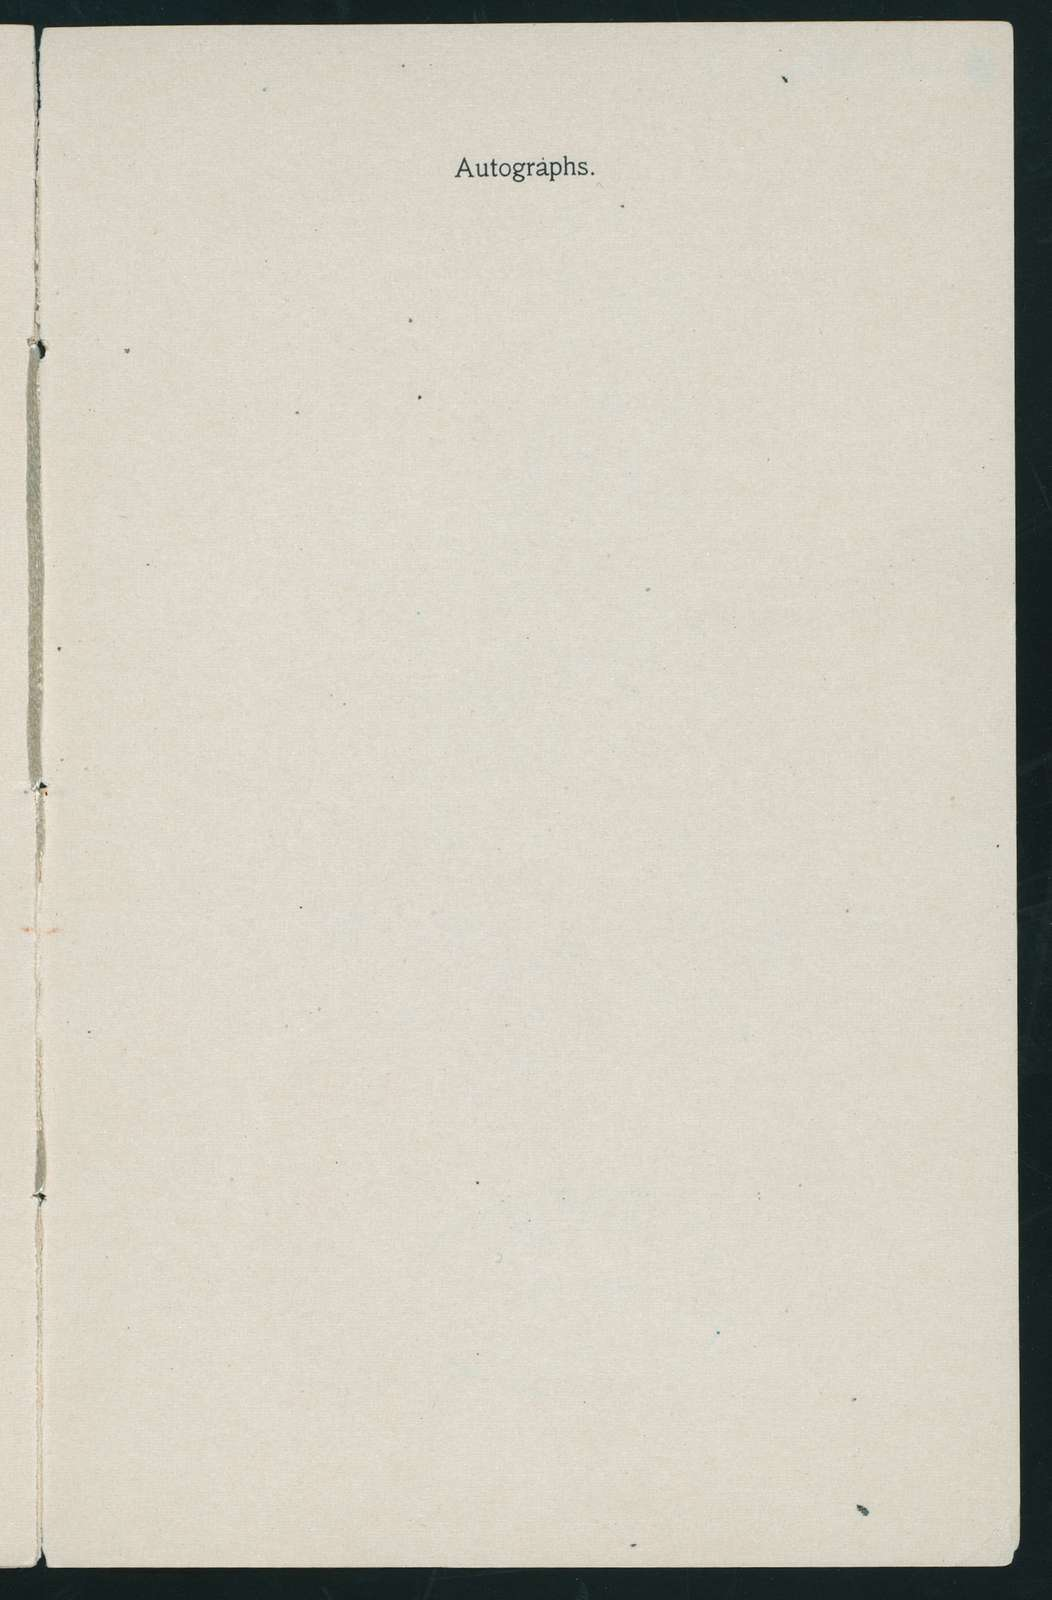 """ANNUAL DINNER IN HONOR OF BENJAMIN FRANKLIN [held by] THE TYPOTHETAE OF NEW YORK [at] """"HOTEL BRUNSWICK, NEW YORK, NY"""" (HOT;)"""